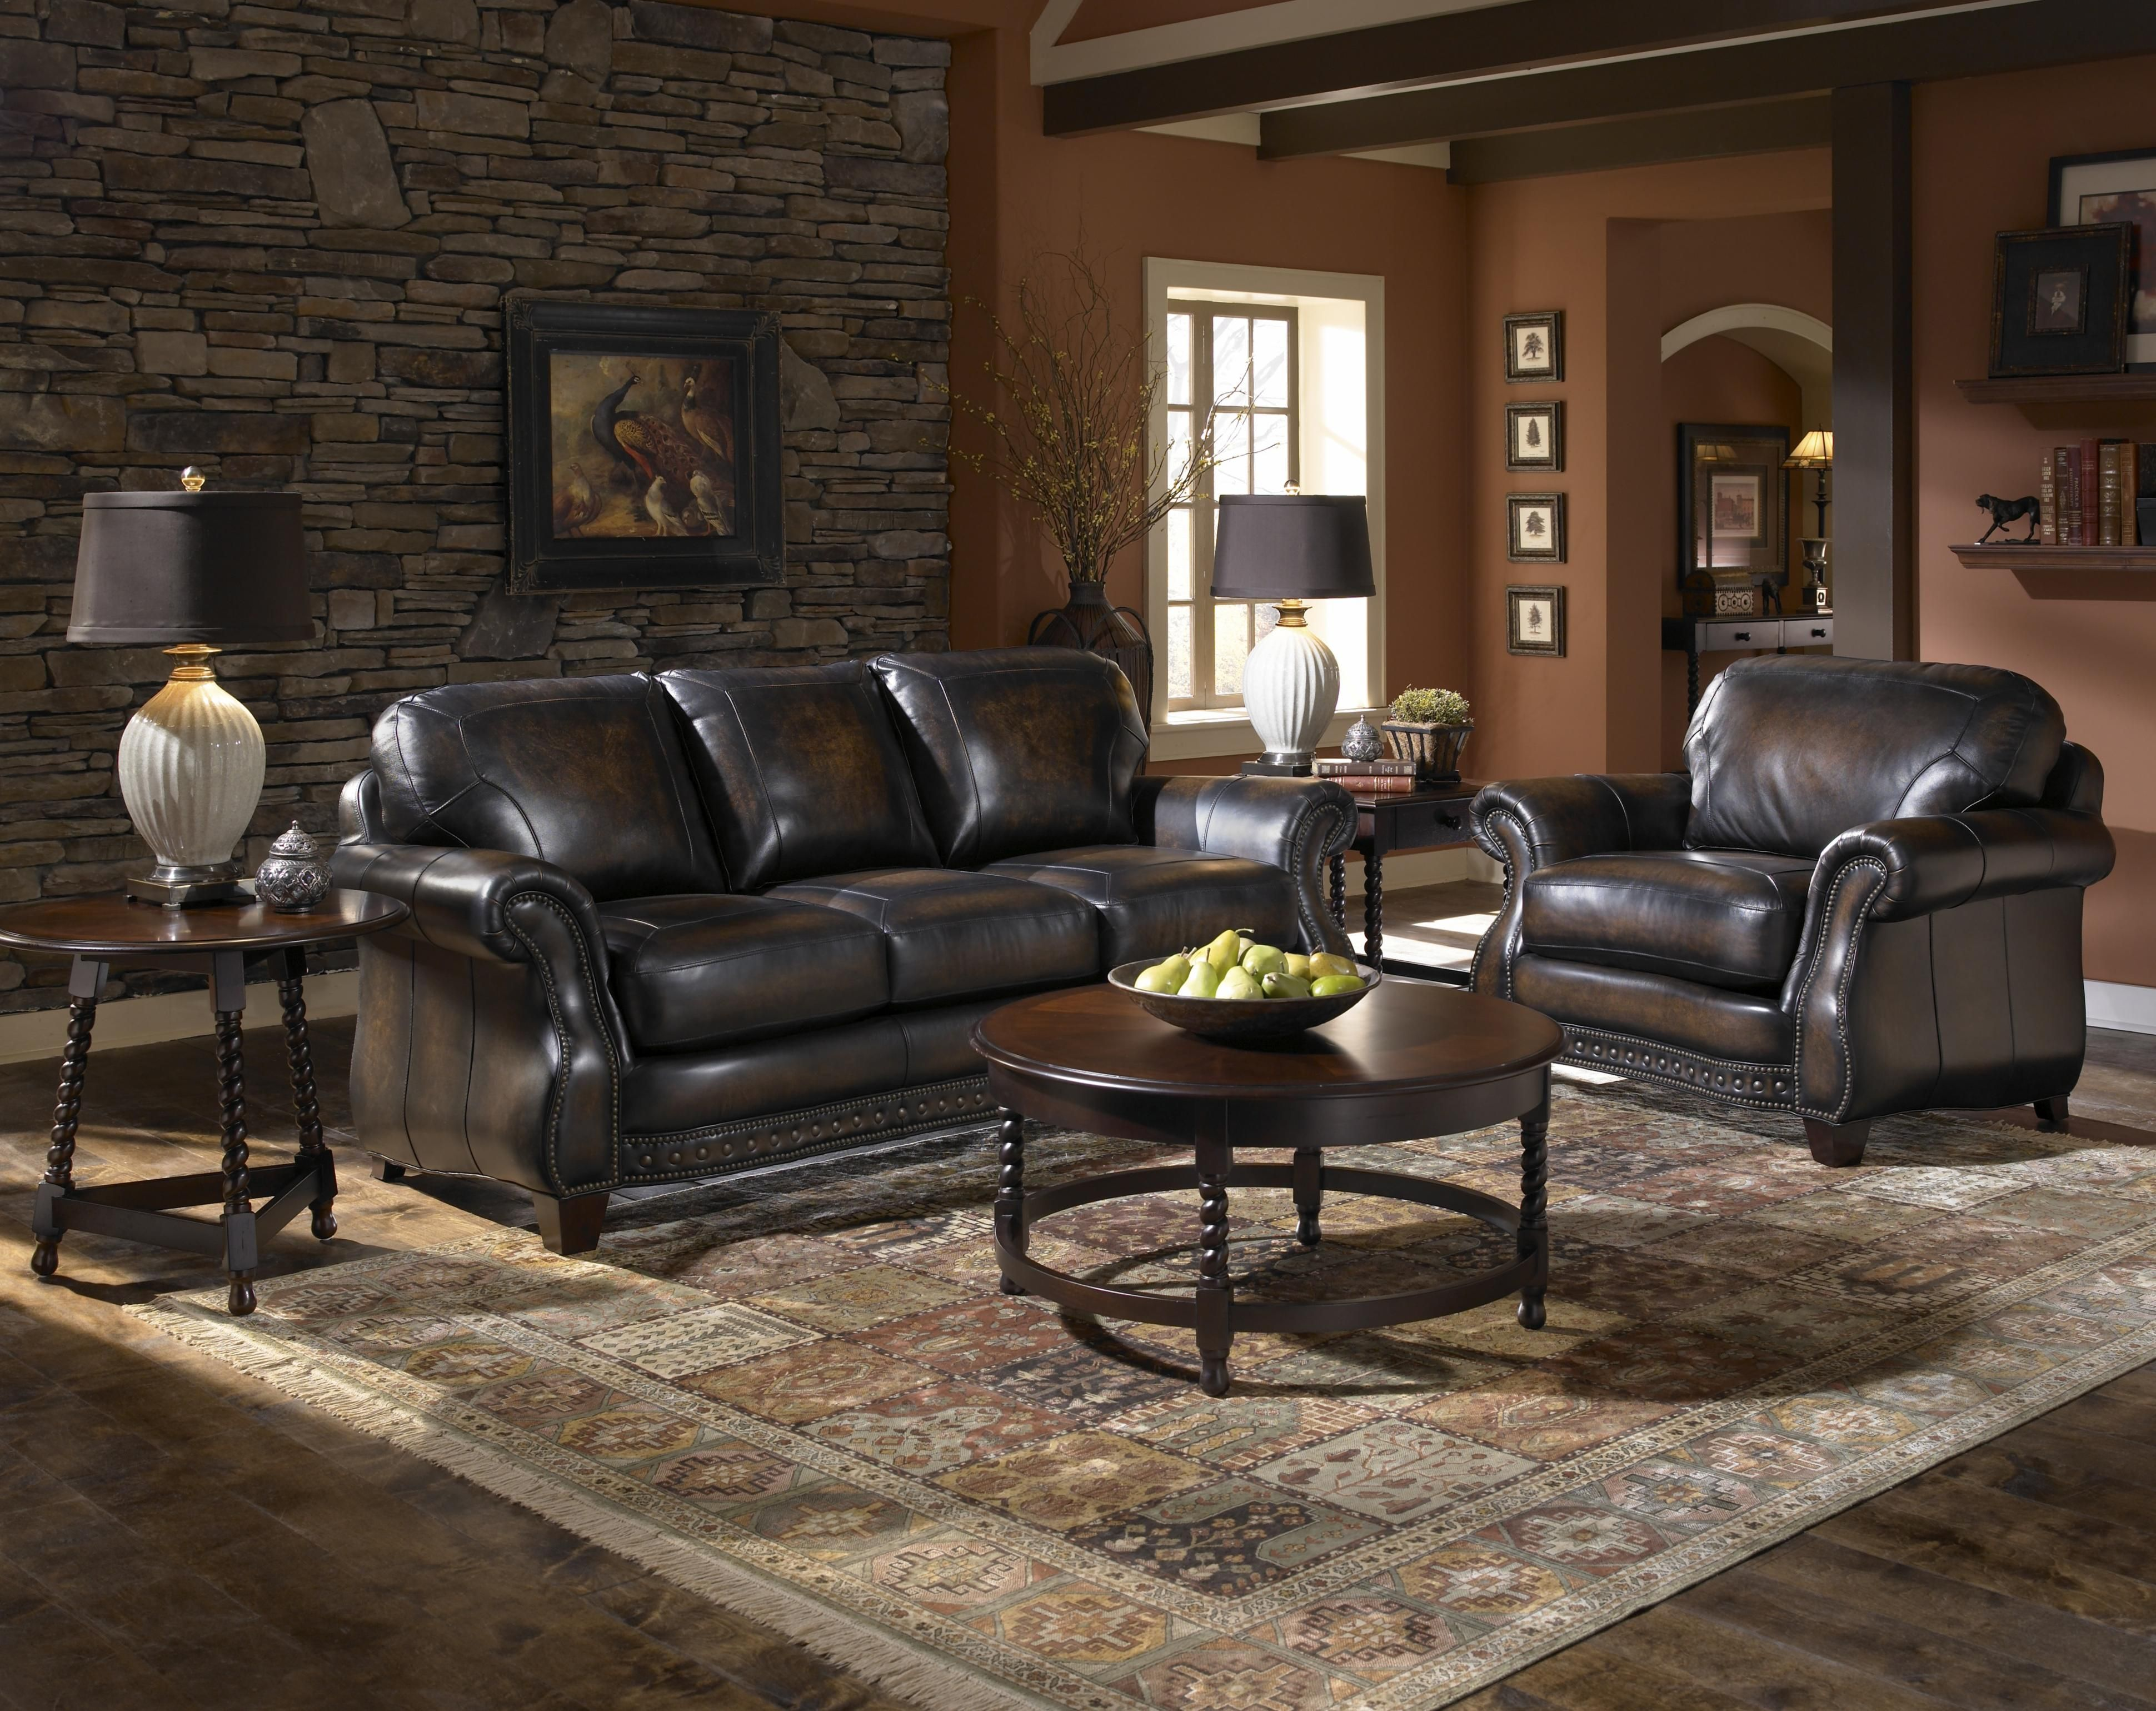 Broyhill Furniture: Stetson Collection Stationary Leather Sofa ...